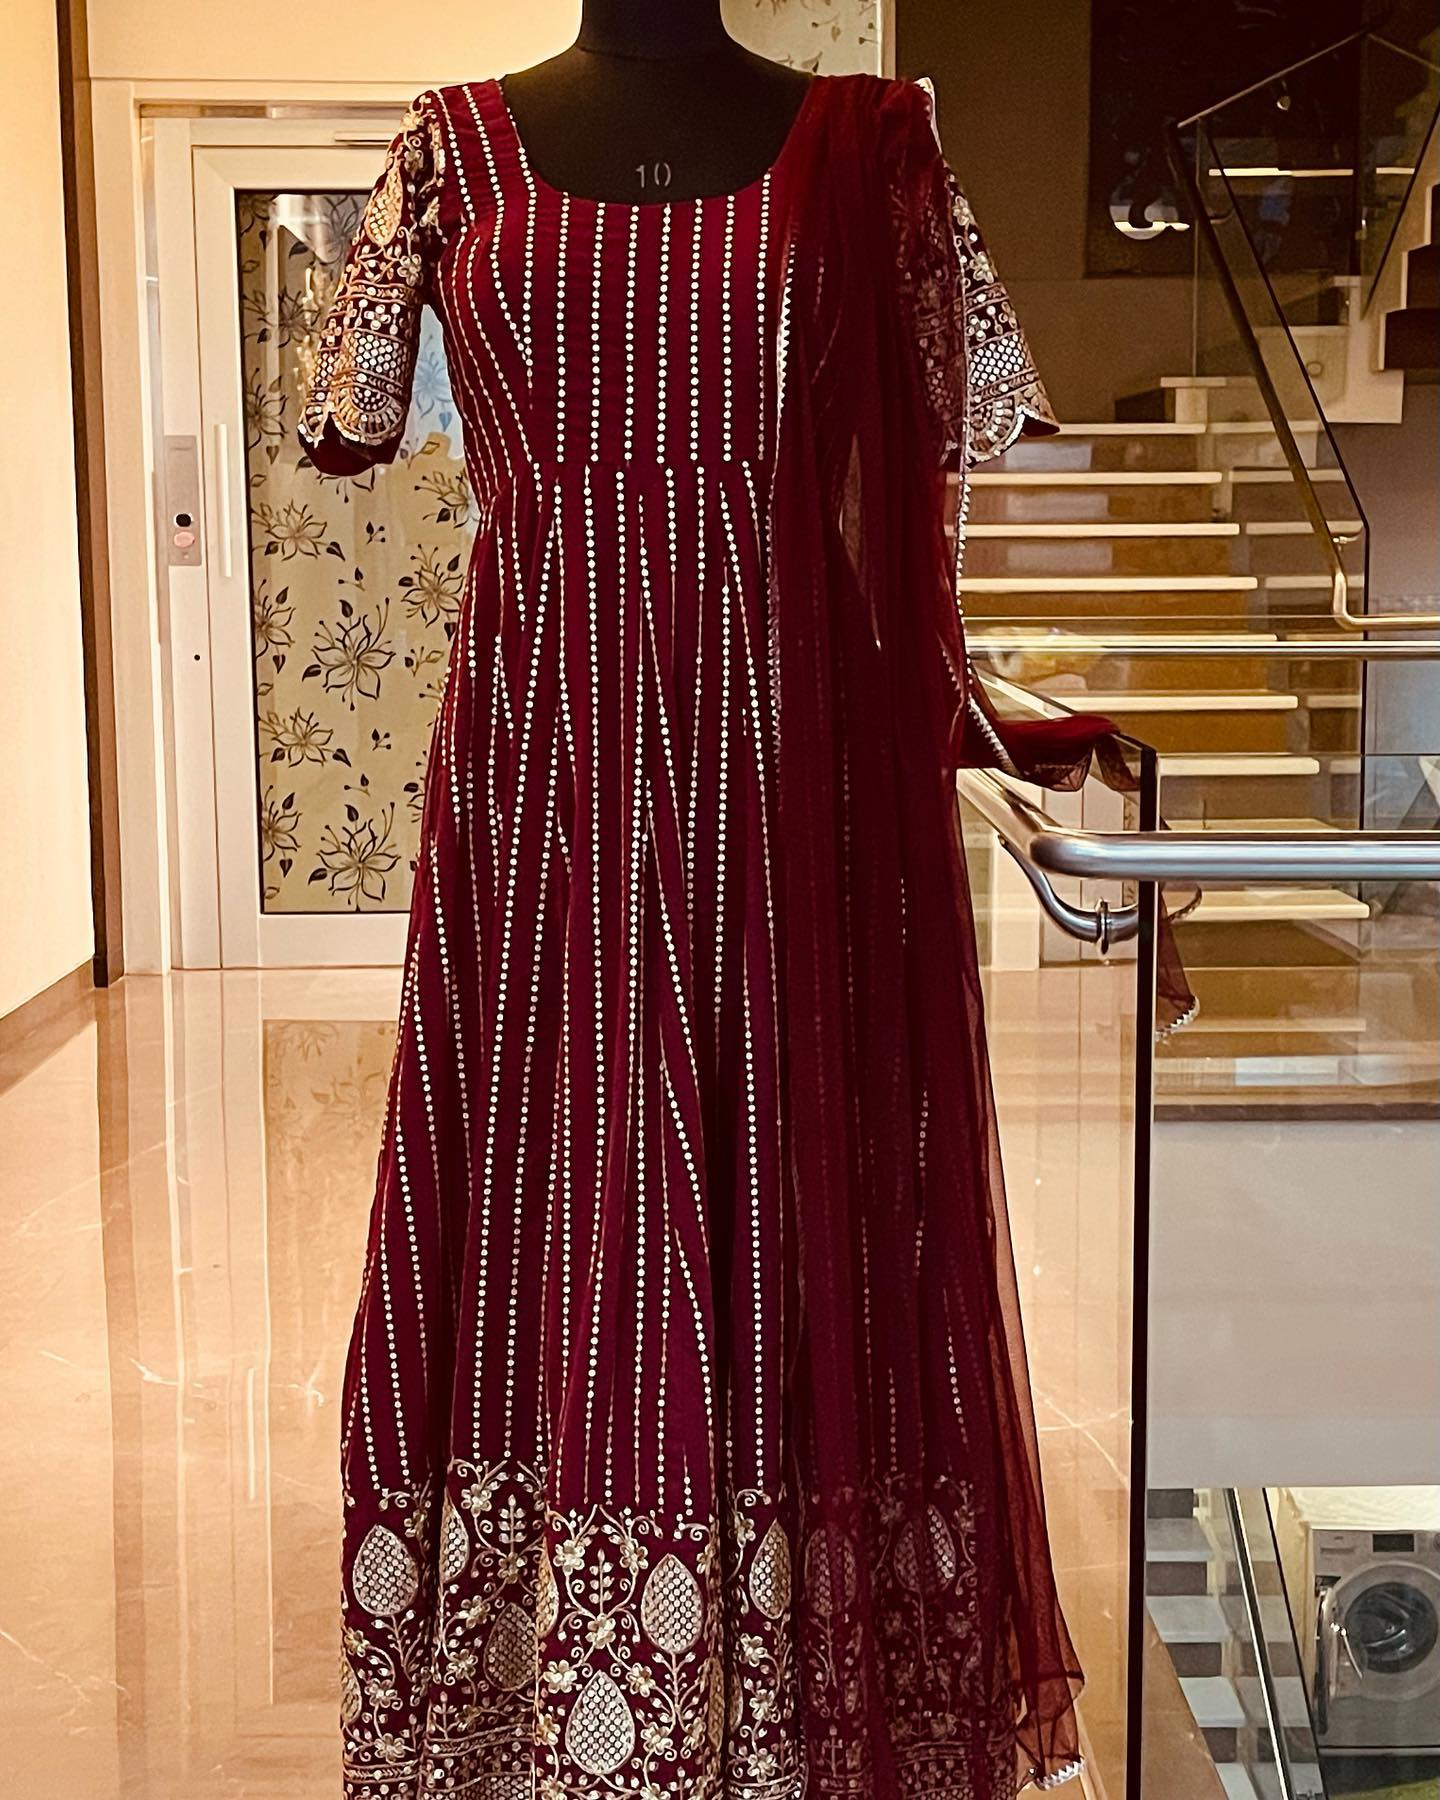 Stunning maroon color faux georgette floor length long  frock with hand embroidery stone work and net dupatta.  2021-08-31